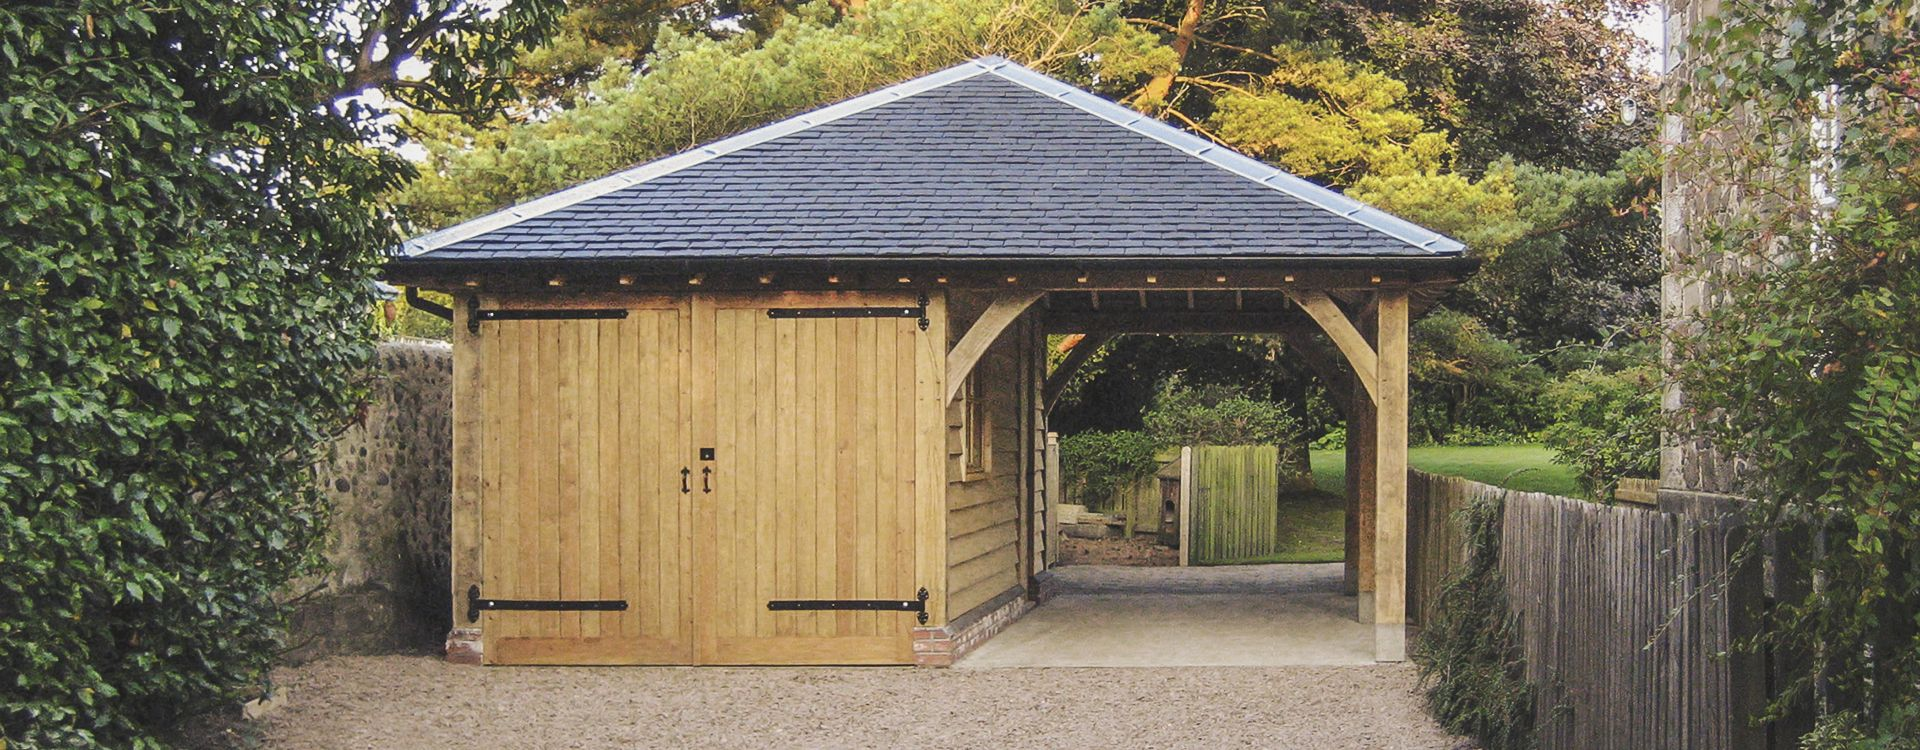 Oak Framed Carports Timber Car Port Kits Carport Timber Garage Diy Carport